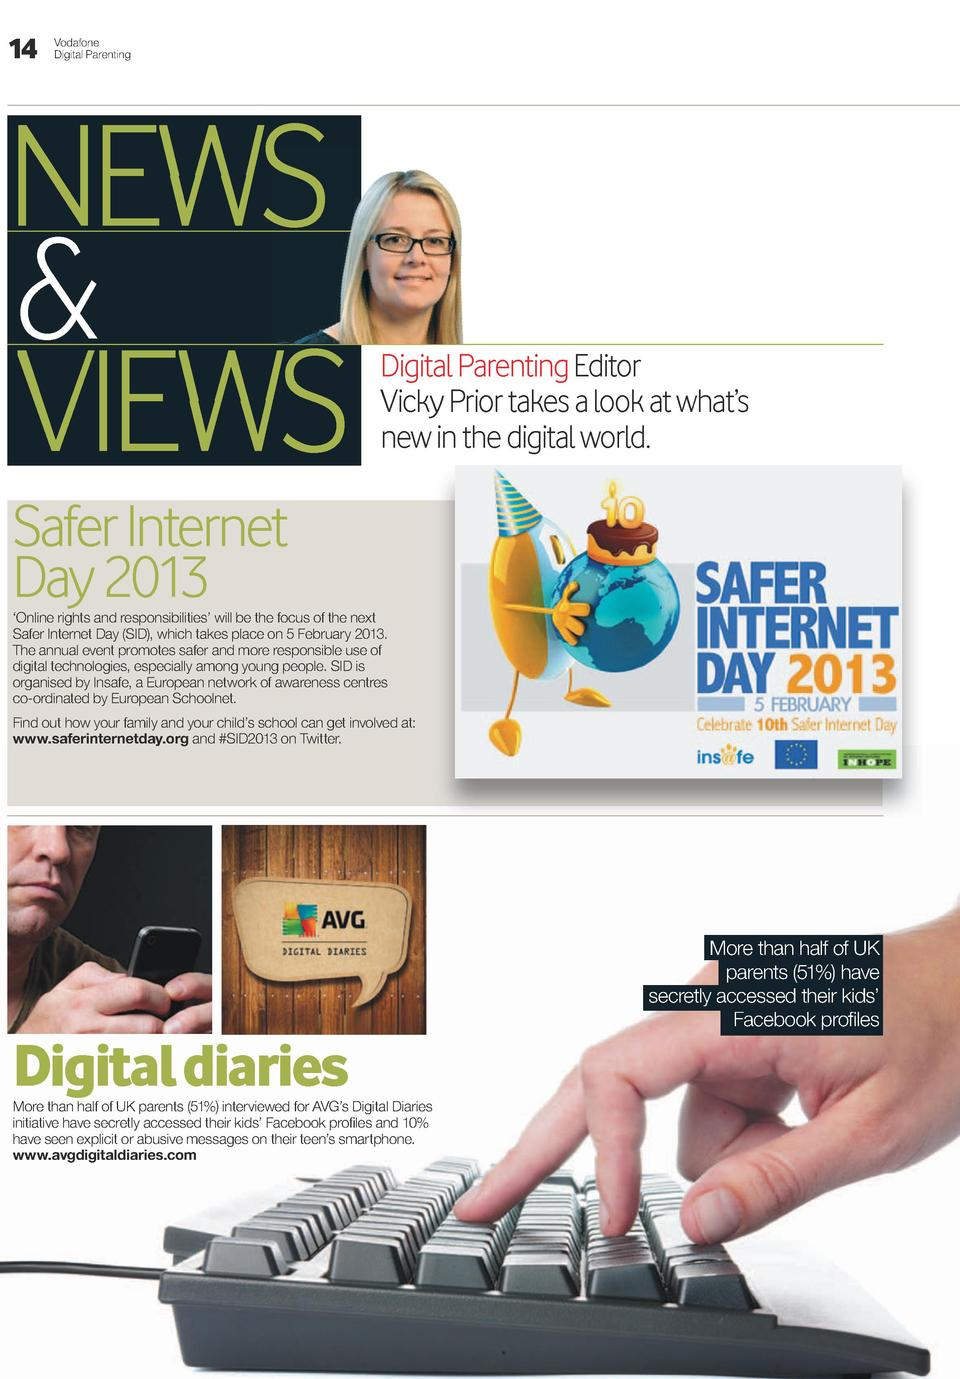 14  Vodafone Digital Parenting  NEWS   VIEWS  Digital Parenting Editor Vicky Prior takes a look at what   s new in the dig...